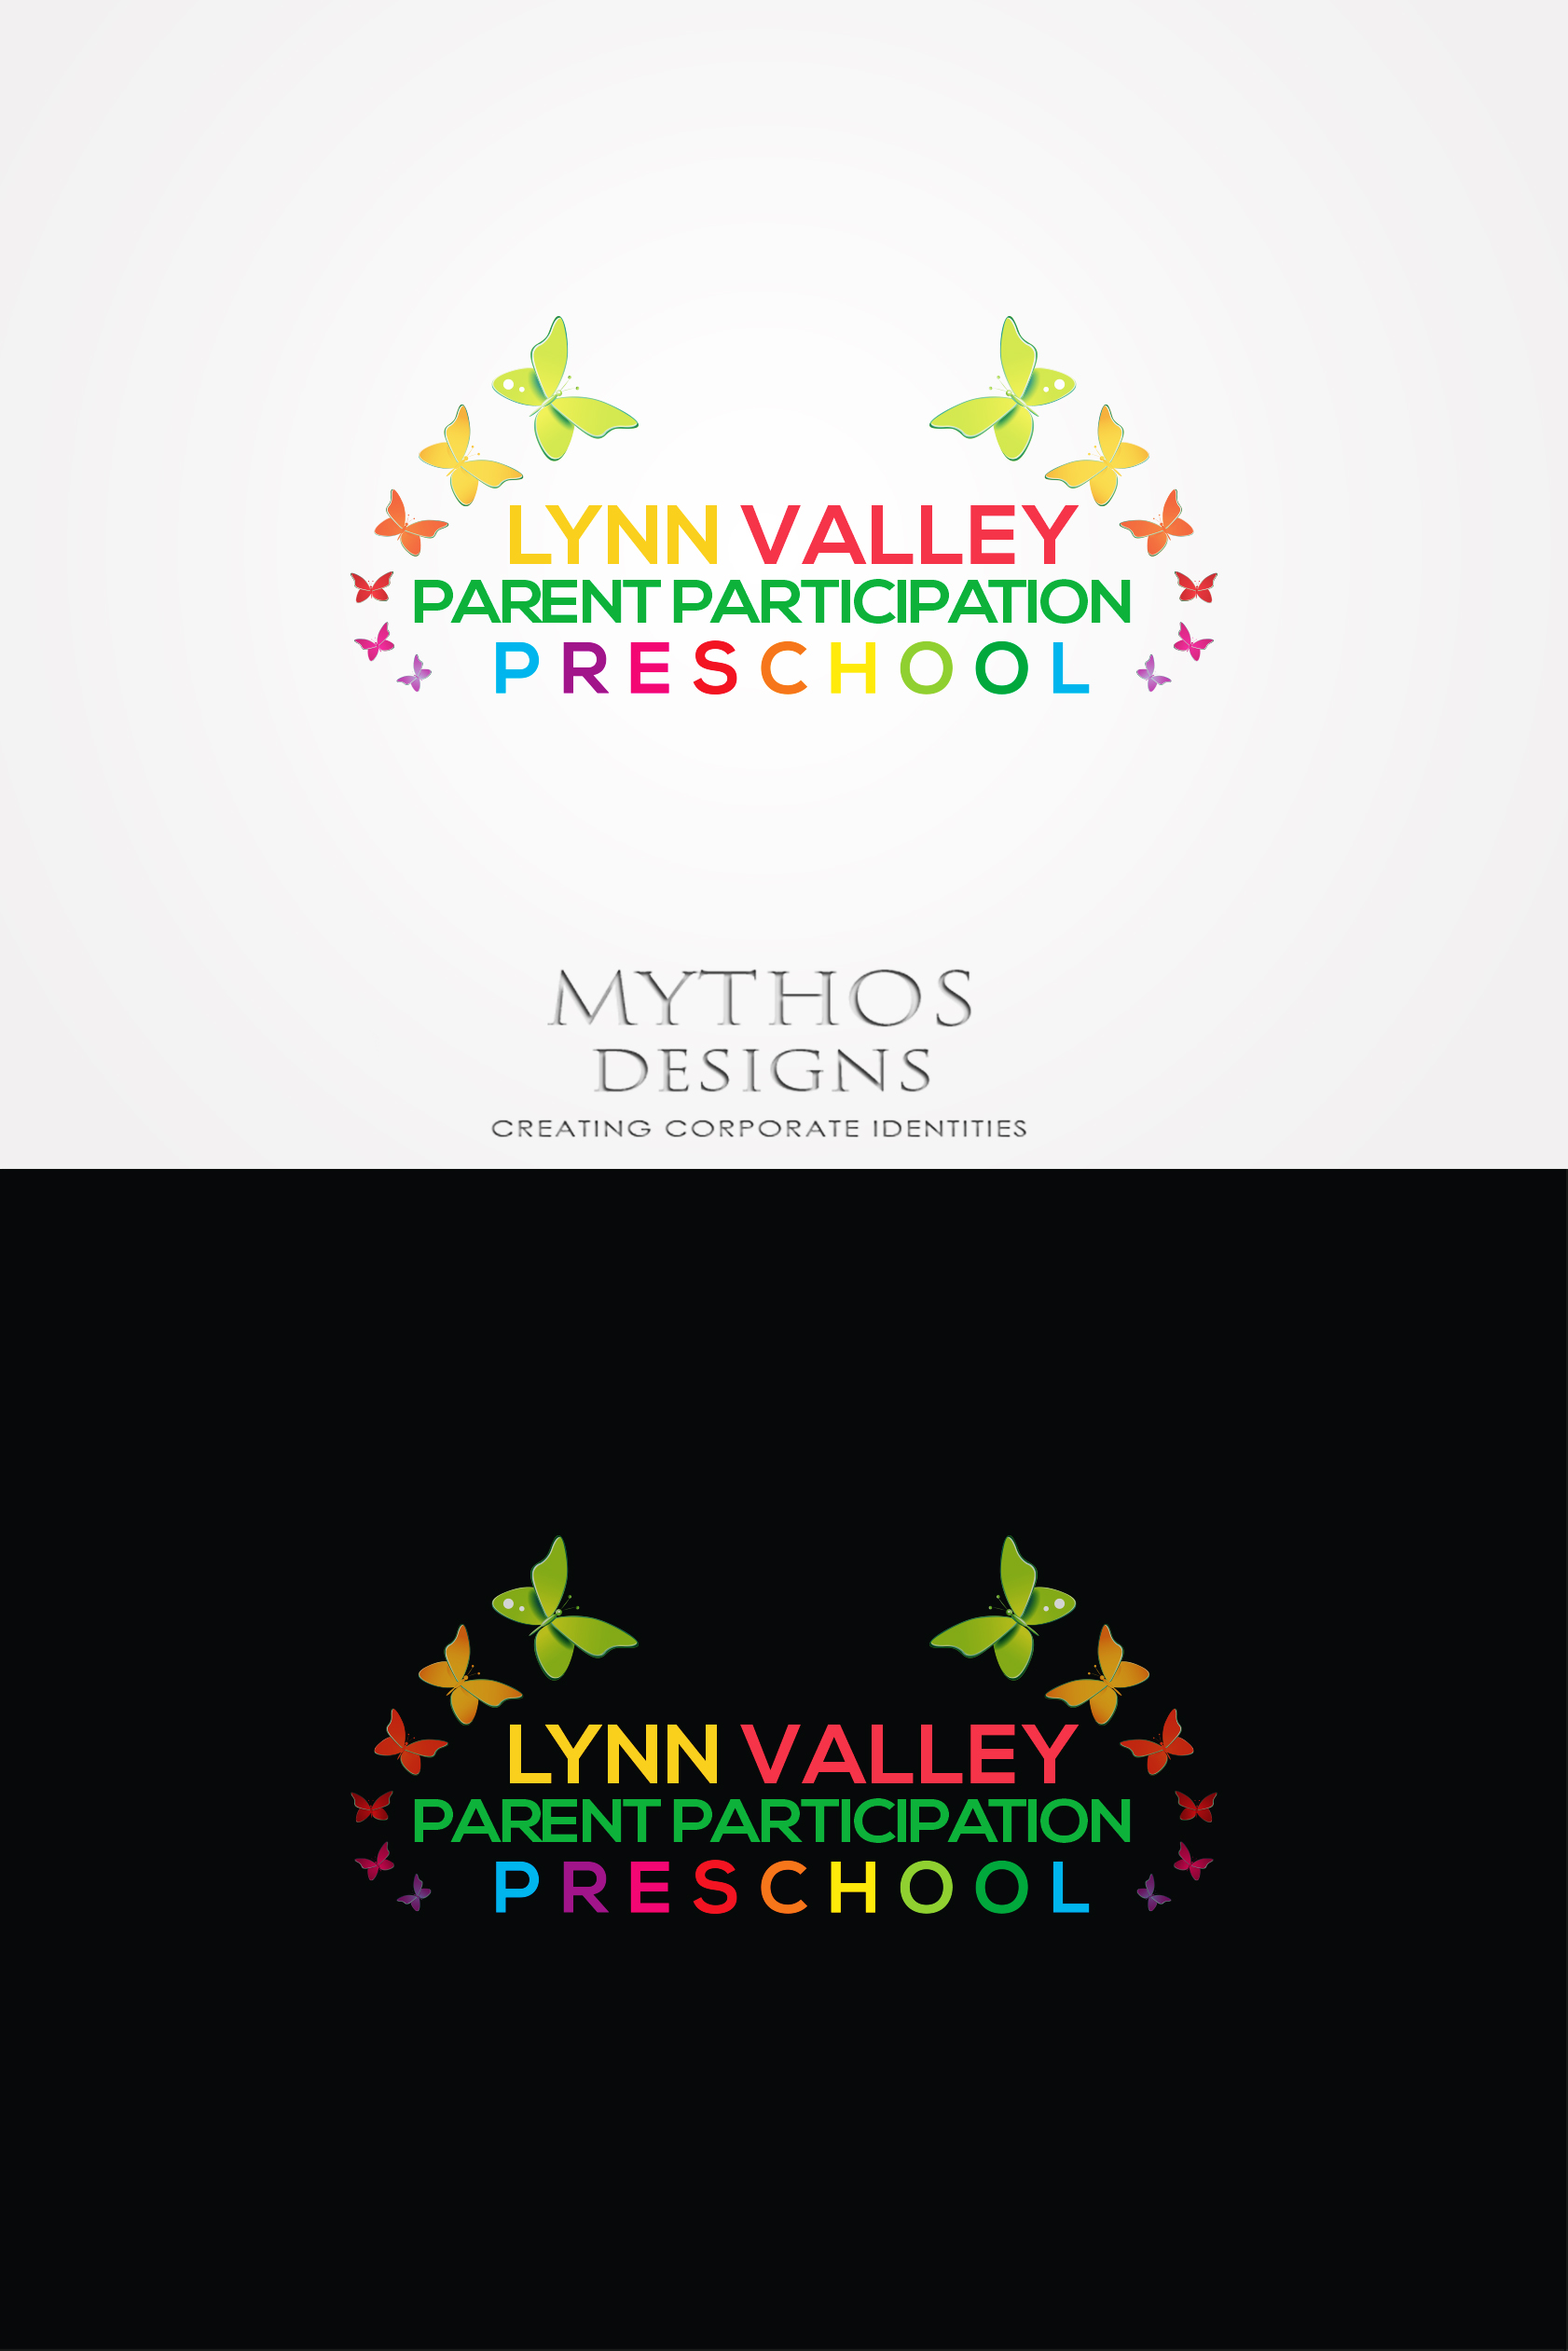 Logo Design by Mythos Designs - Entry No. 58 in the Logo Design Contest New Logo Design for Lynn Valley Parent Participation Preschool.